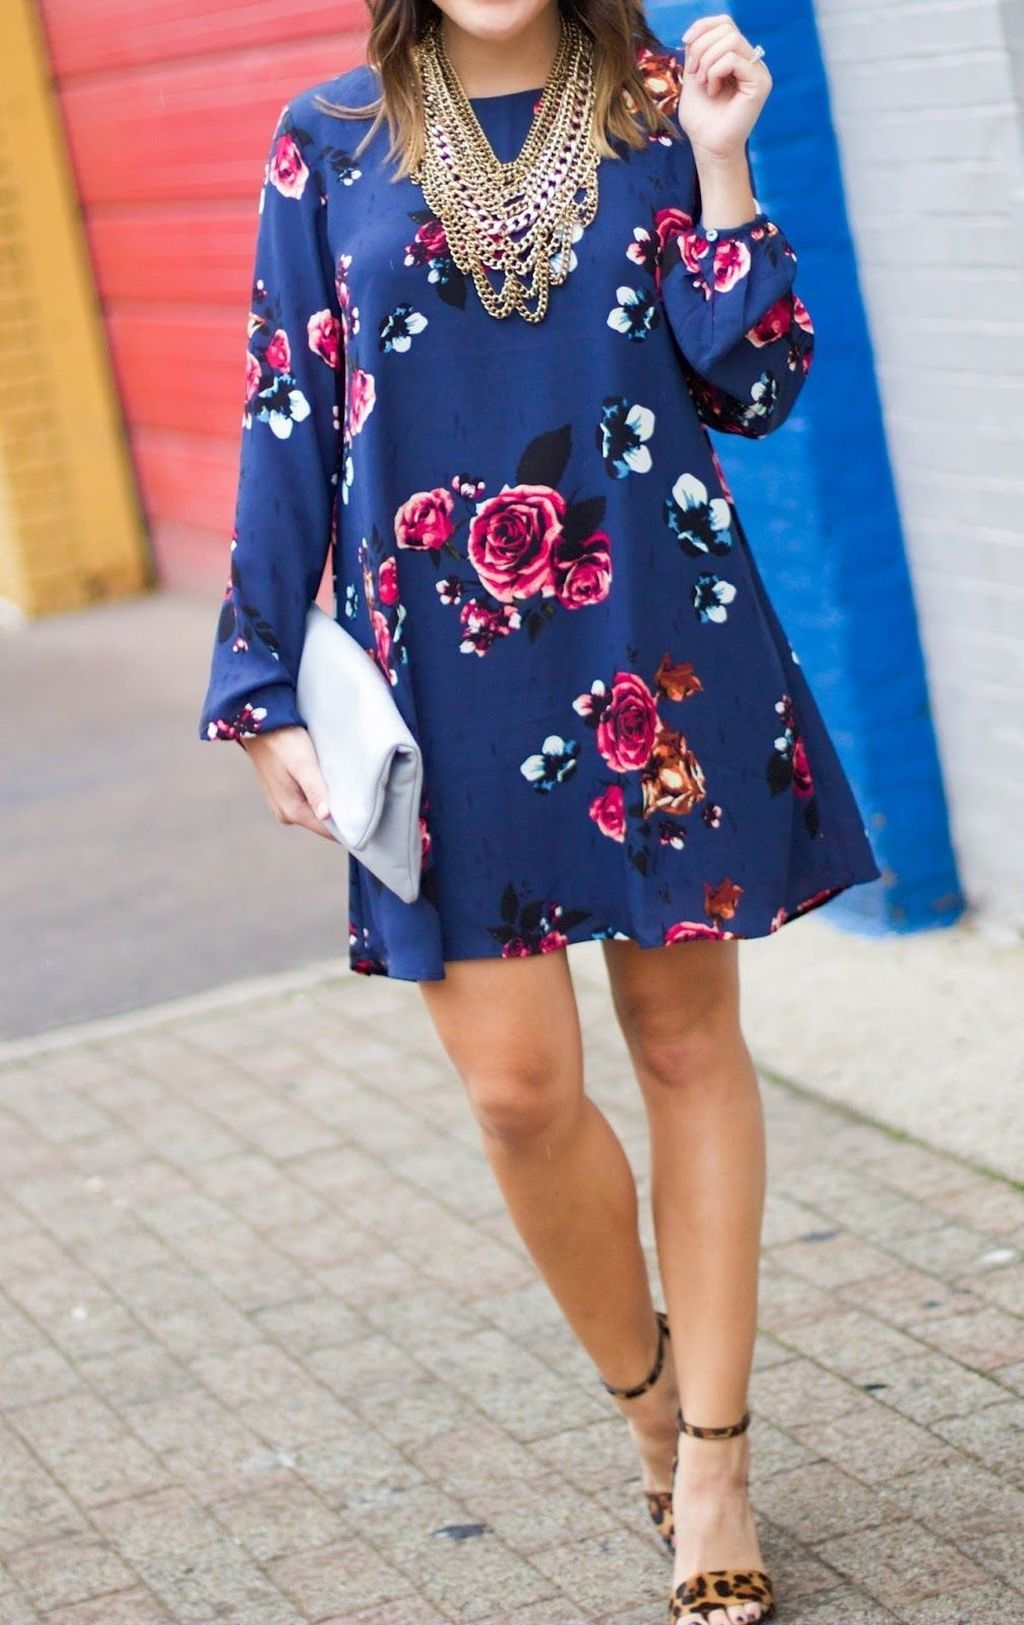 Summer dresses to wear to a wedding   The Best Fall Dresses Ideas To Wear To A Wedding  Zachary